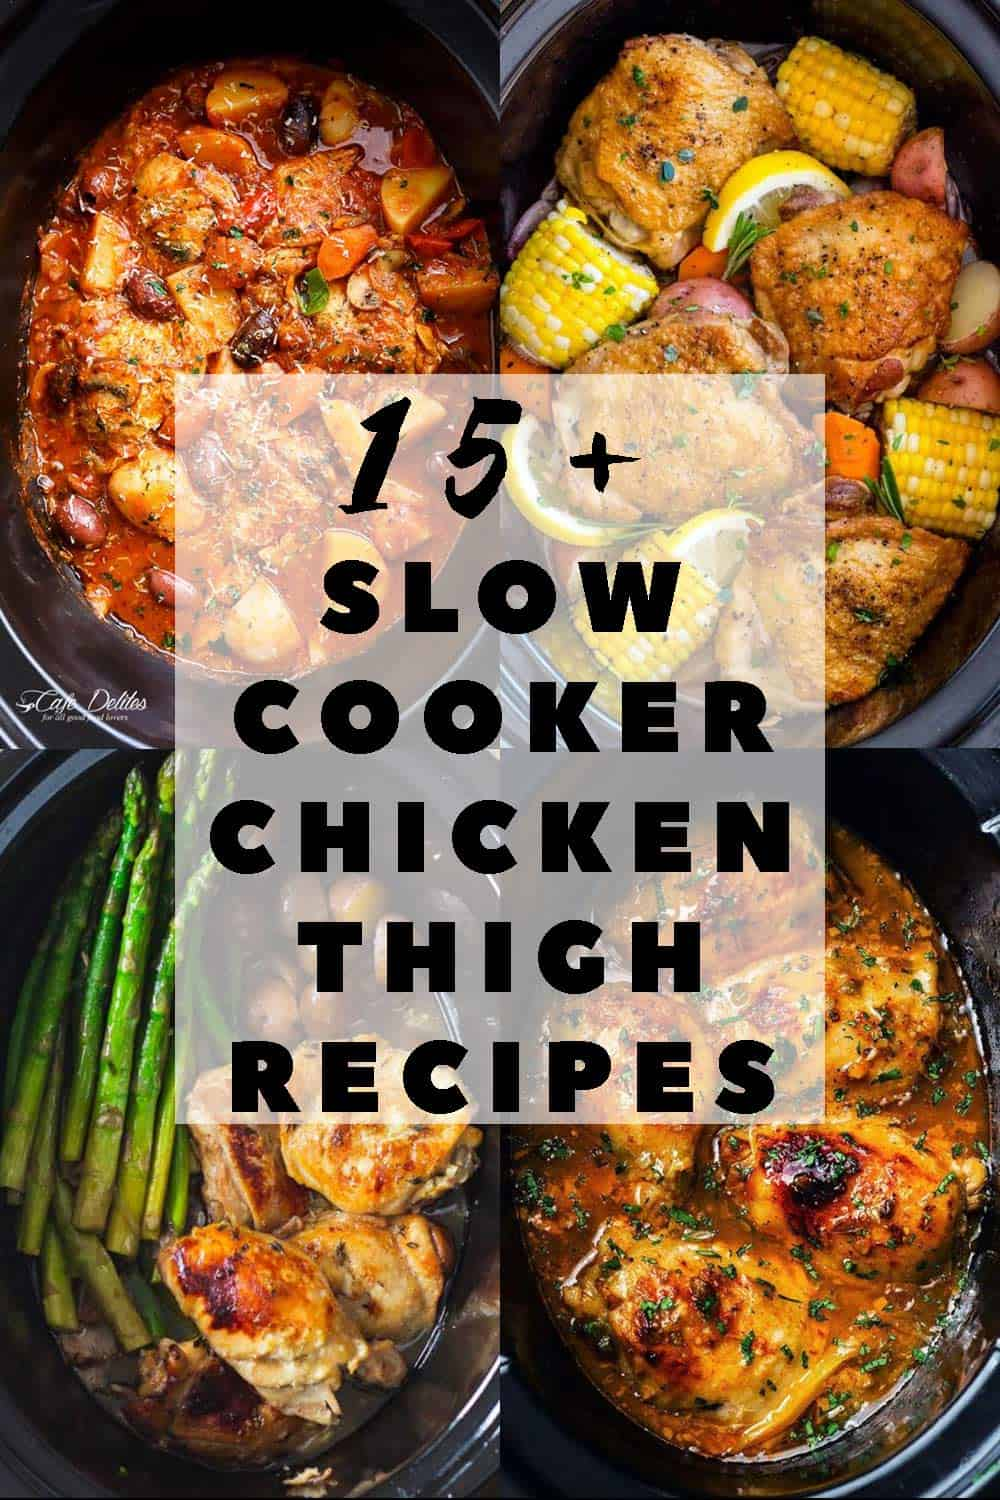 Healthy Cookout Recipes: The 15+ Best Slow Cooker Chicken Thigh Recipes